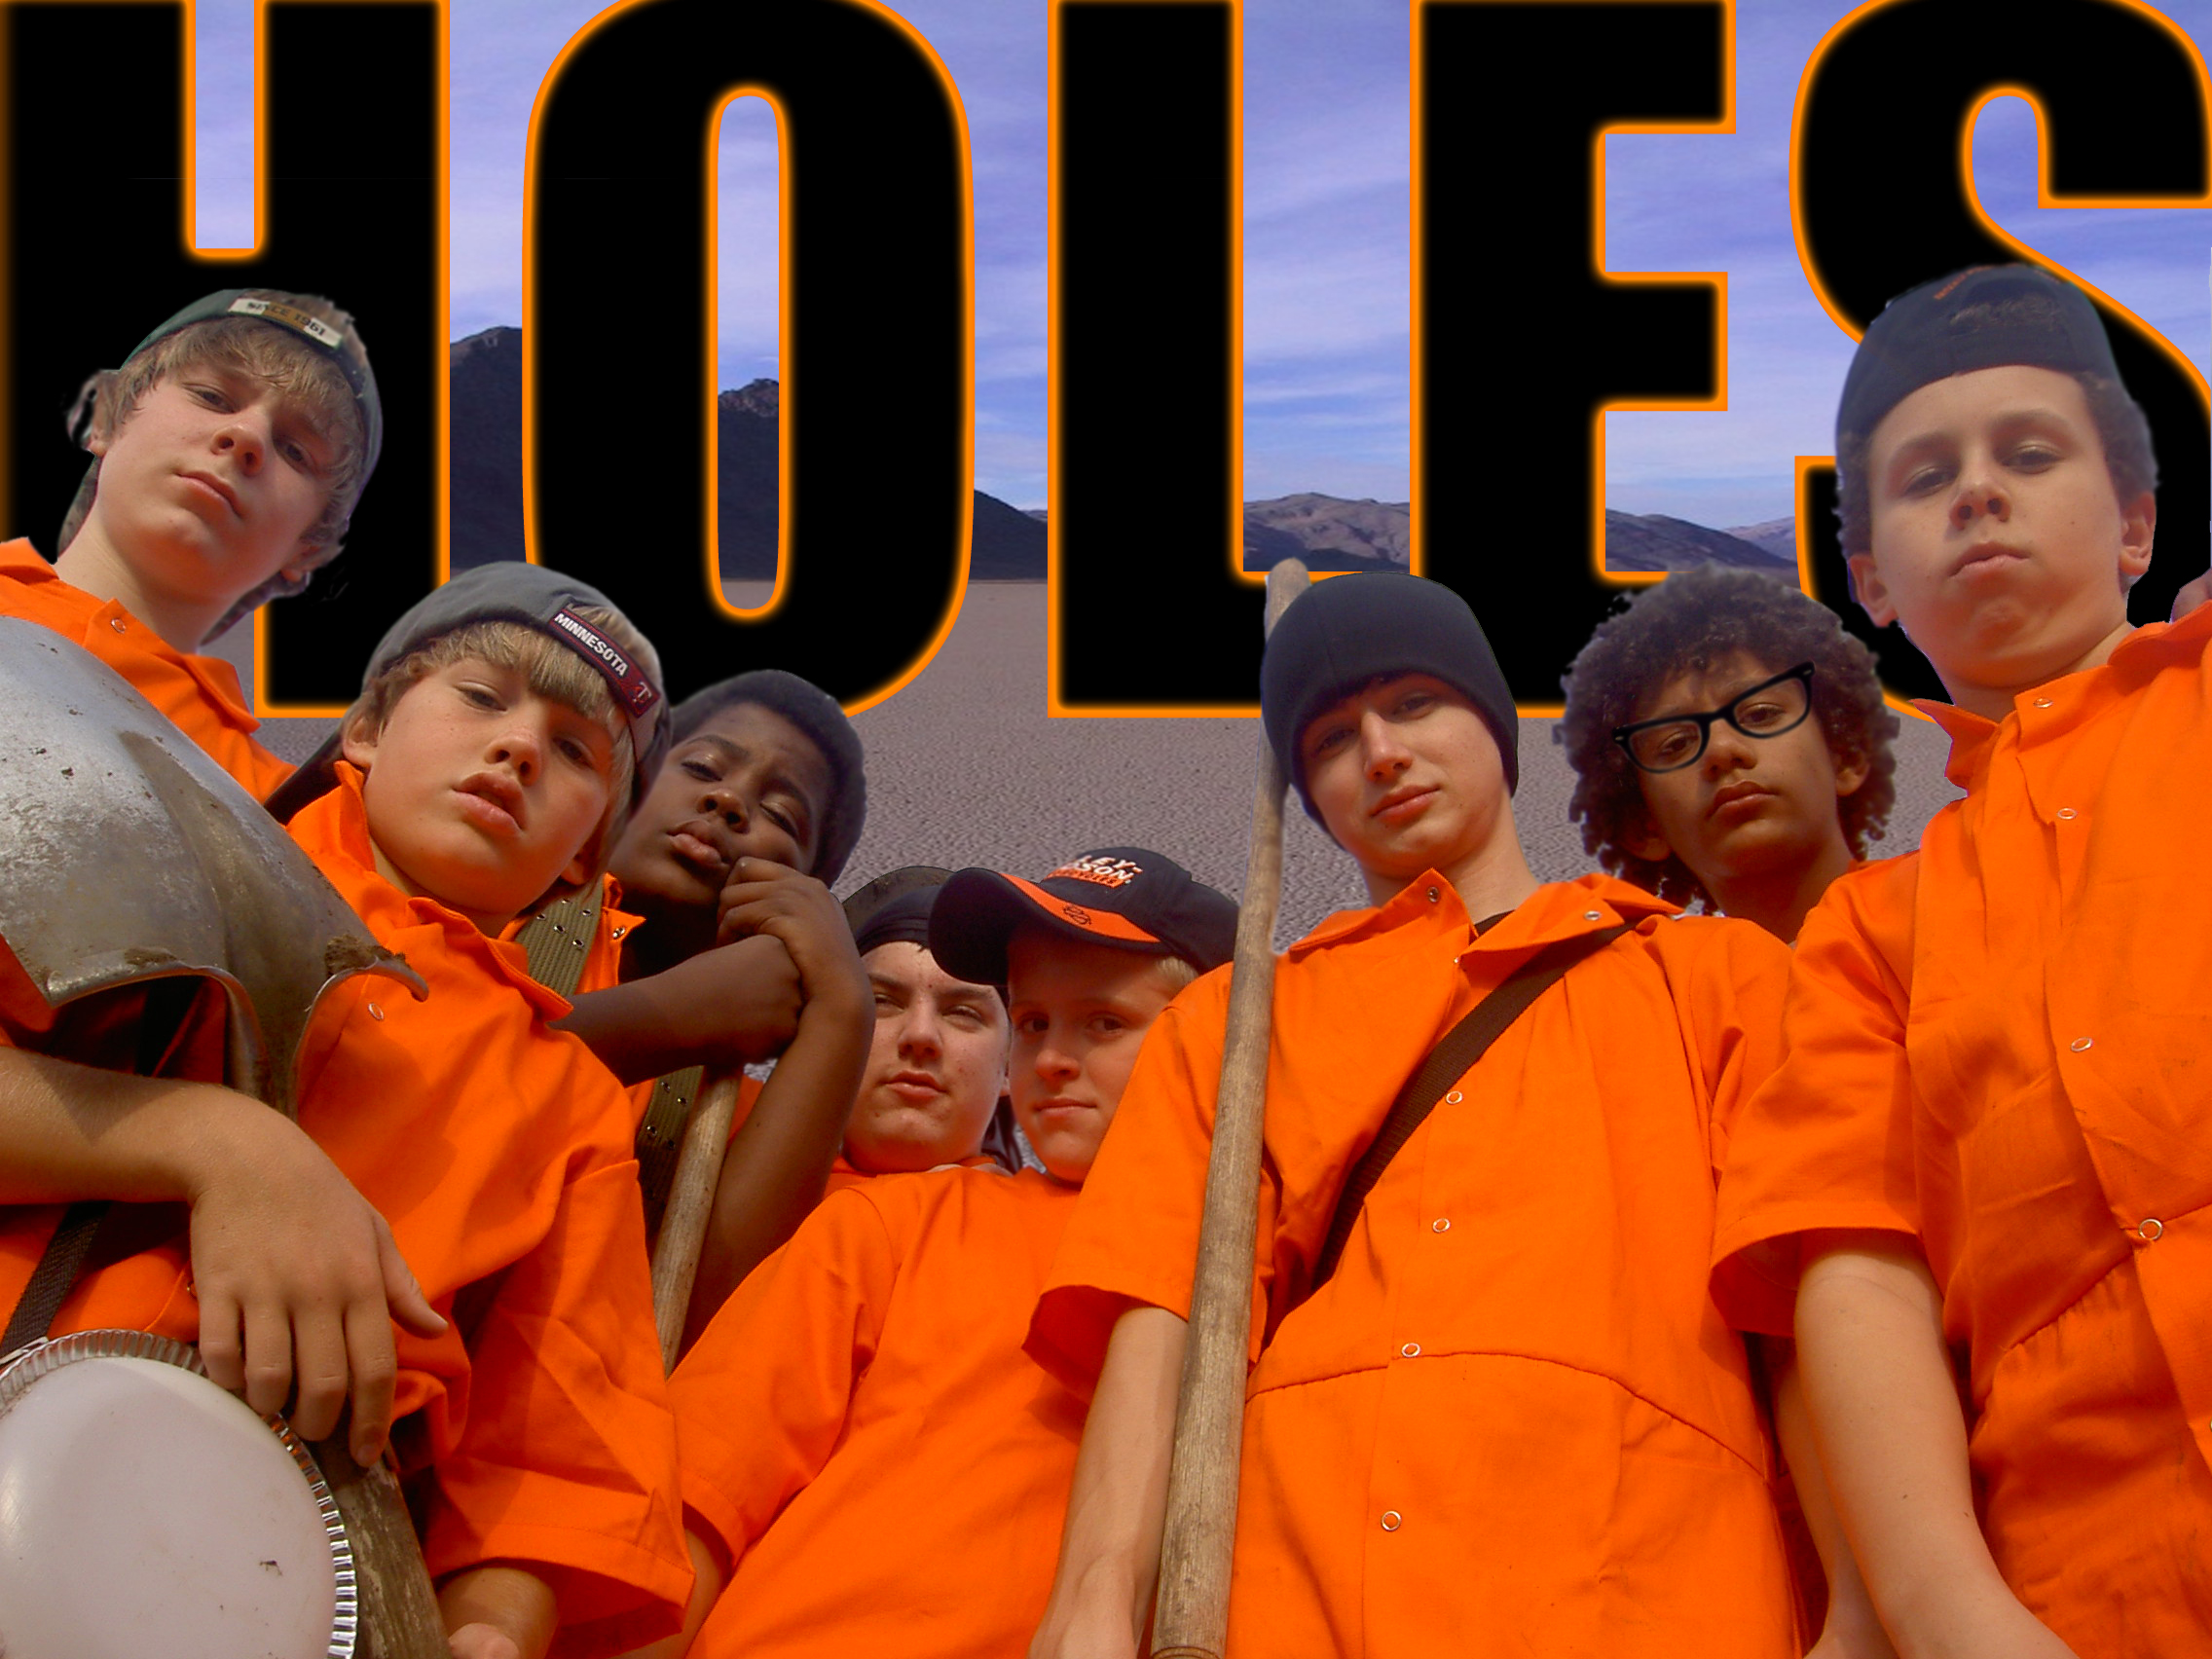 Director: Holes